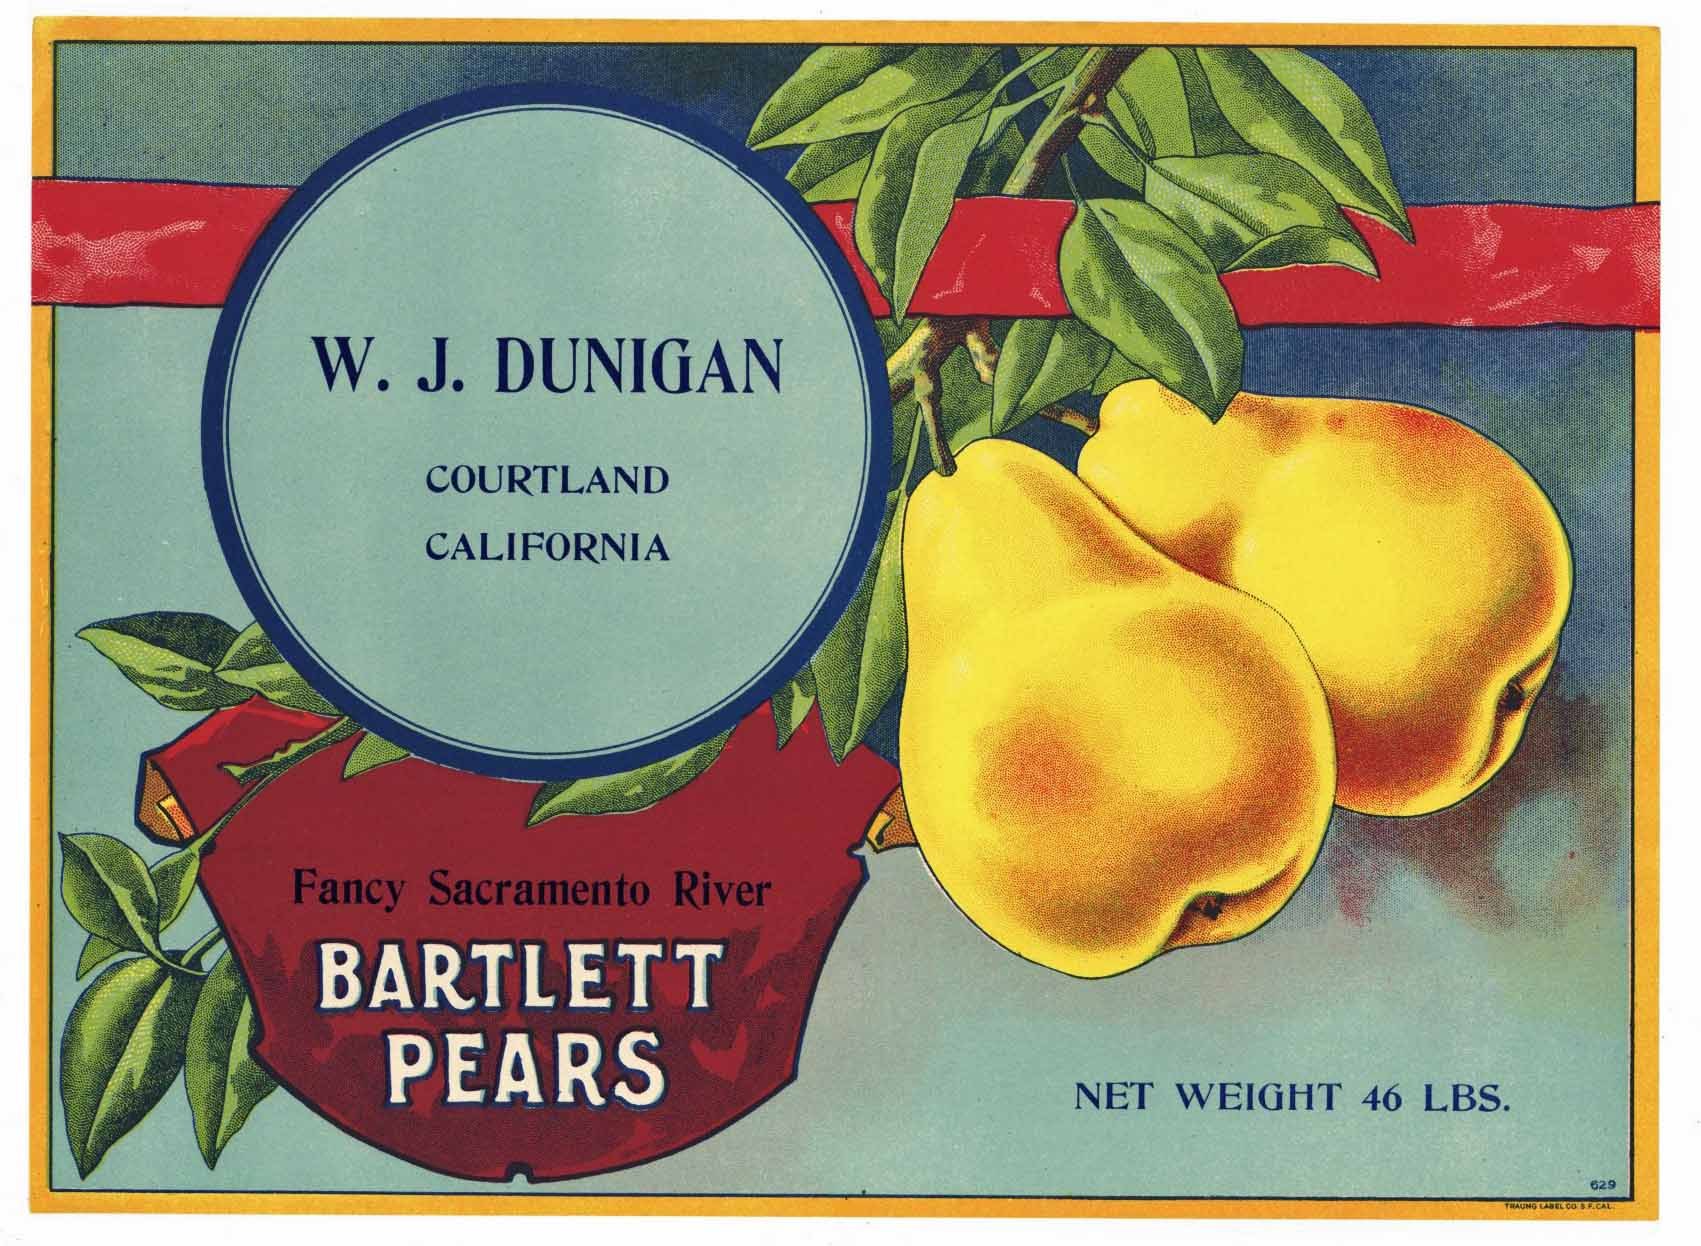 W.J. Dunigan Brand Vintage Courtland Pear Crate Label